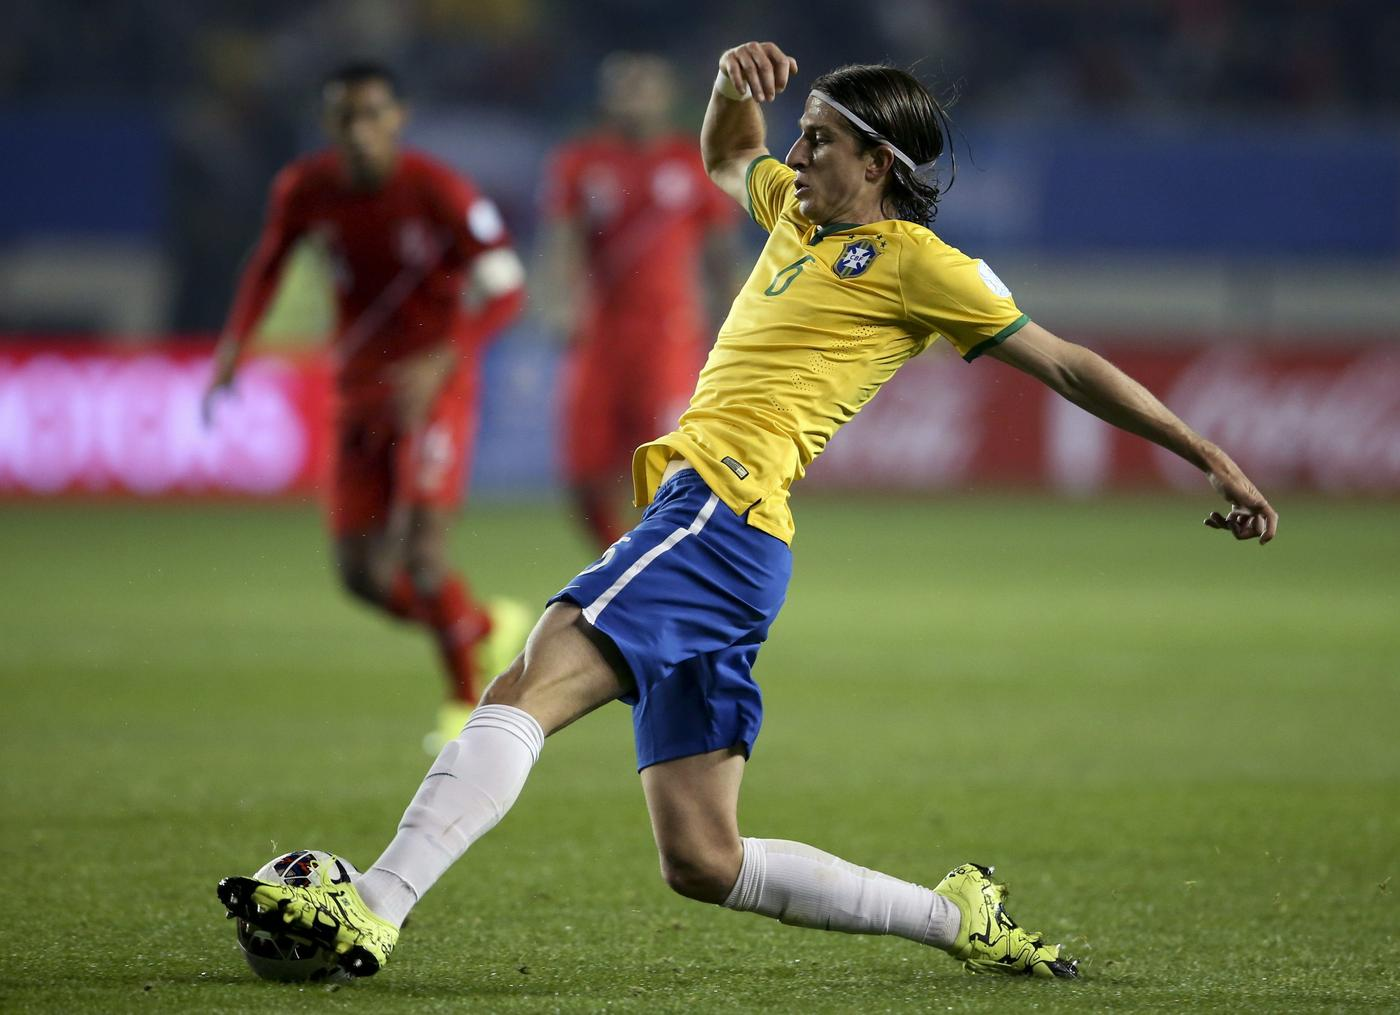 Filipe Luis 'set to leave Chelsea for Atletico Madrid, £11.1m transfer has been agreed'